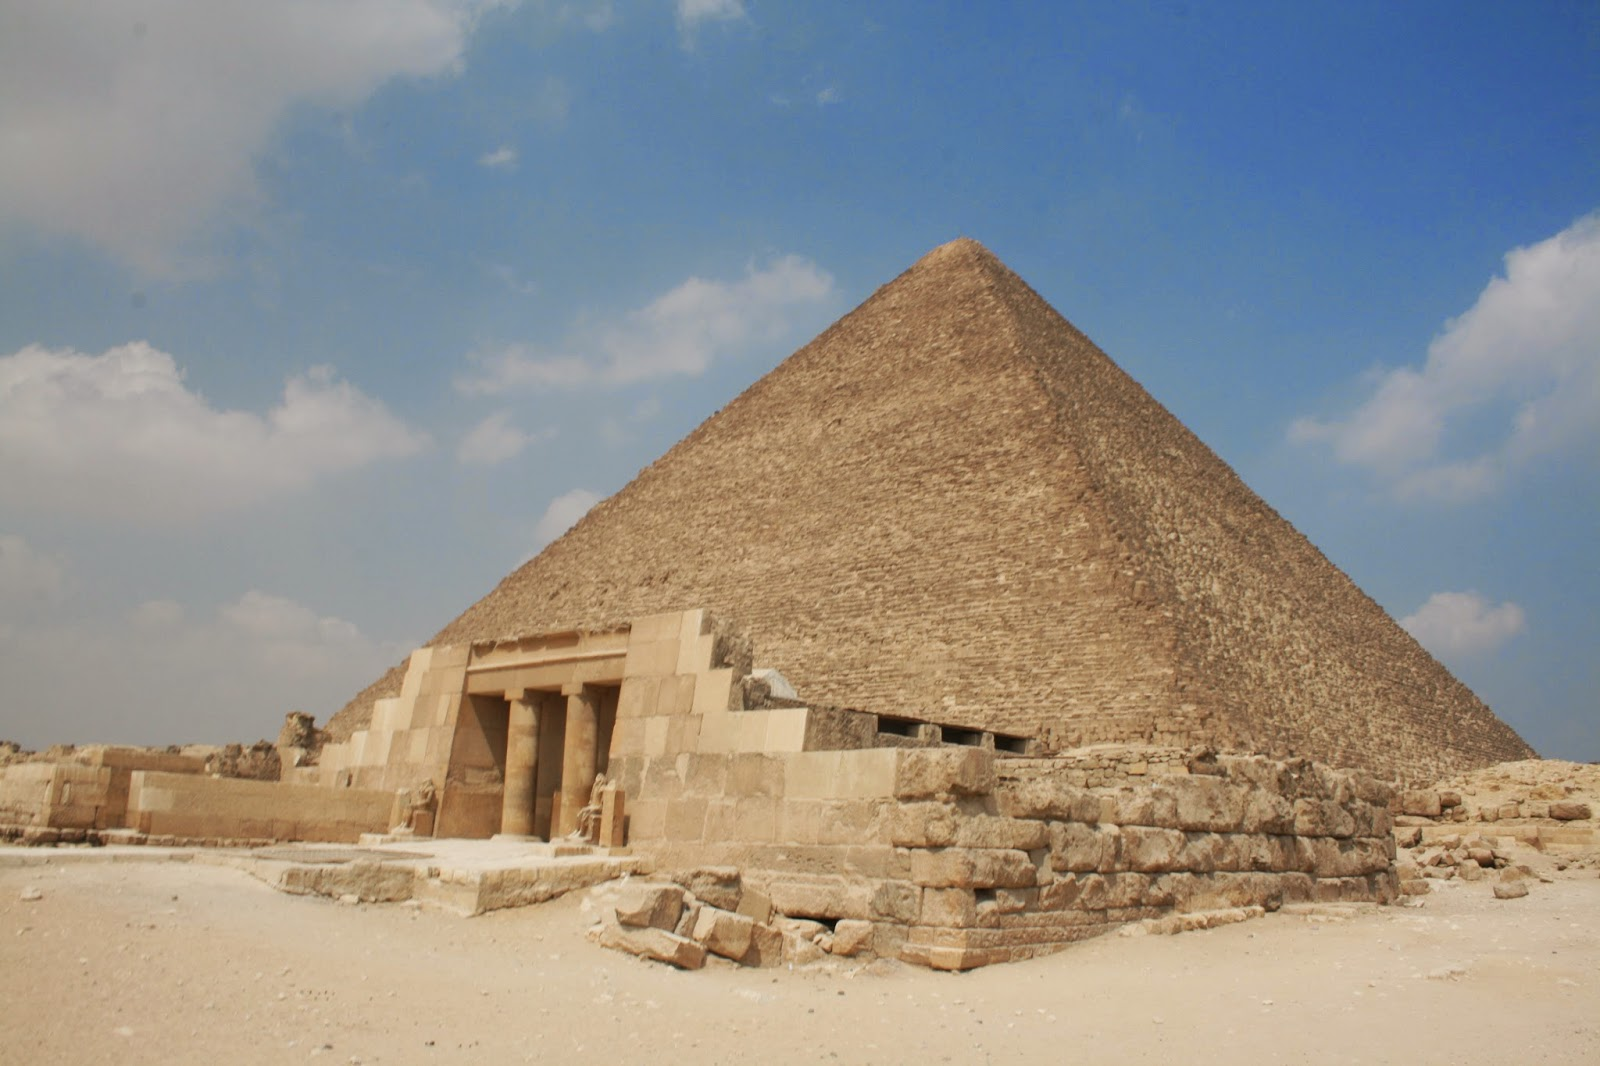 Pyramid of Giza, Egypt - Tourist Destinations